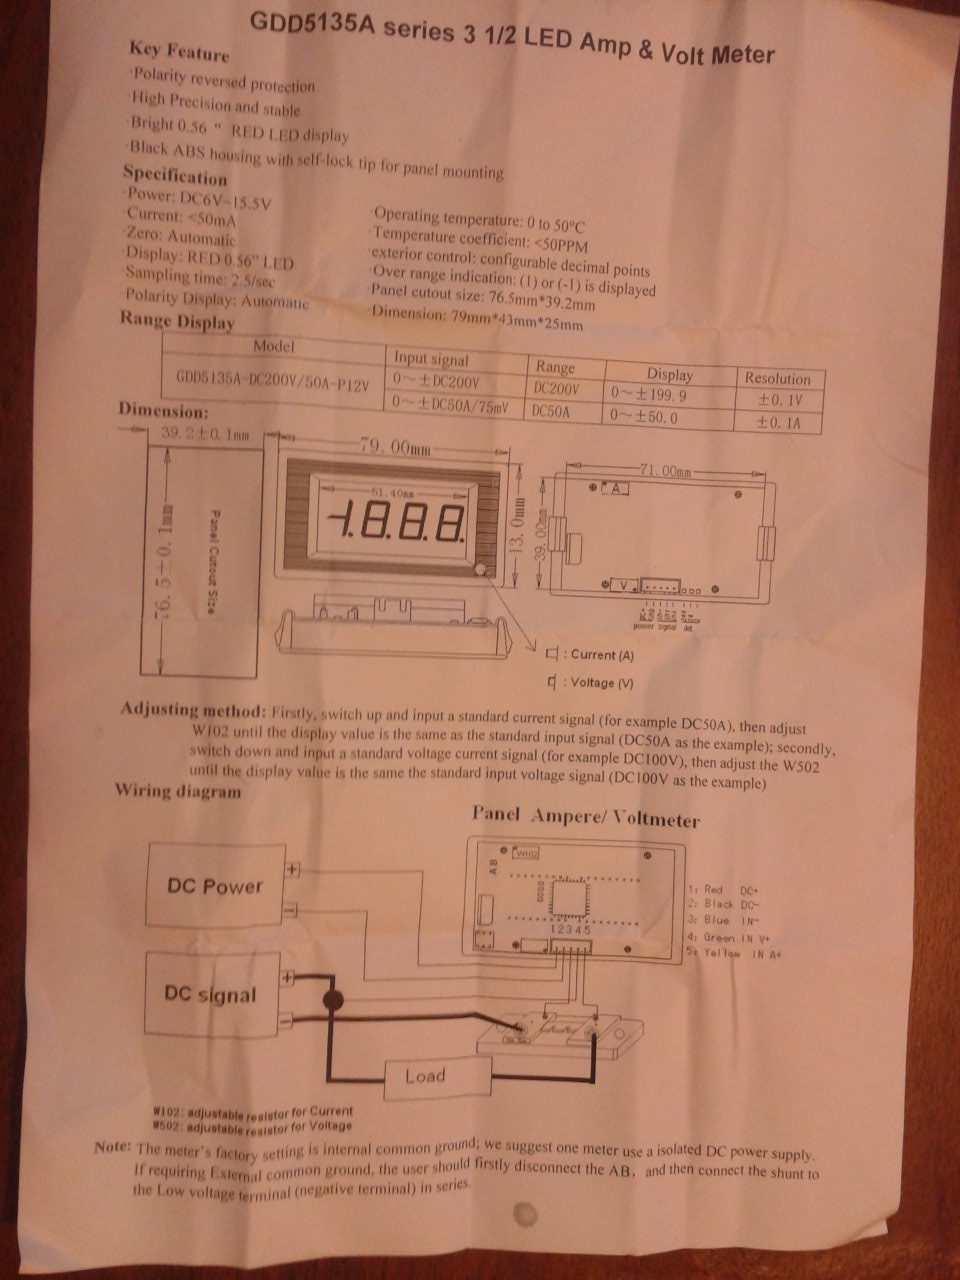 Digital Voltmeter Stimulated Saturn Volt Amp Meter Wiring Diagram For Led Gdd5135a